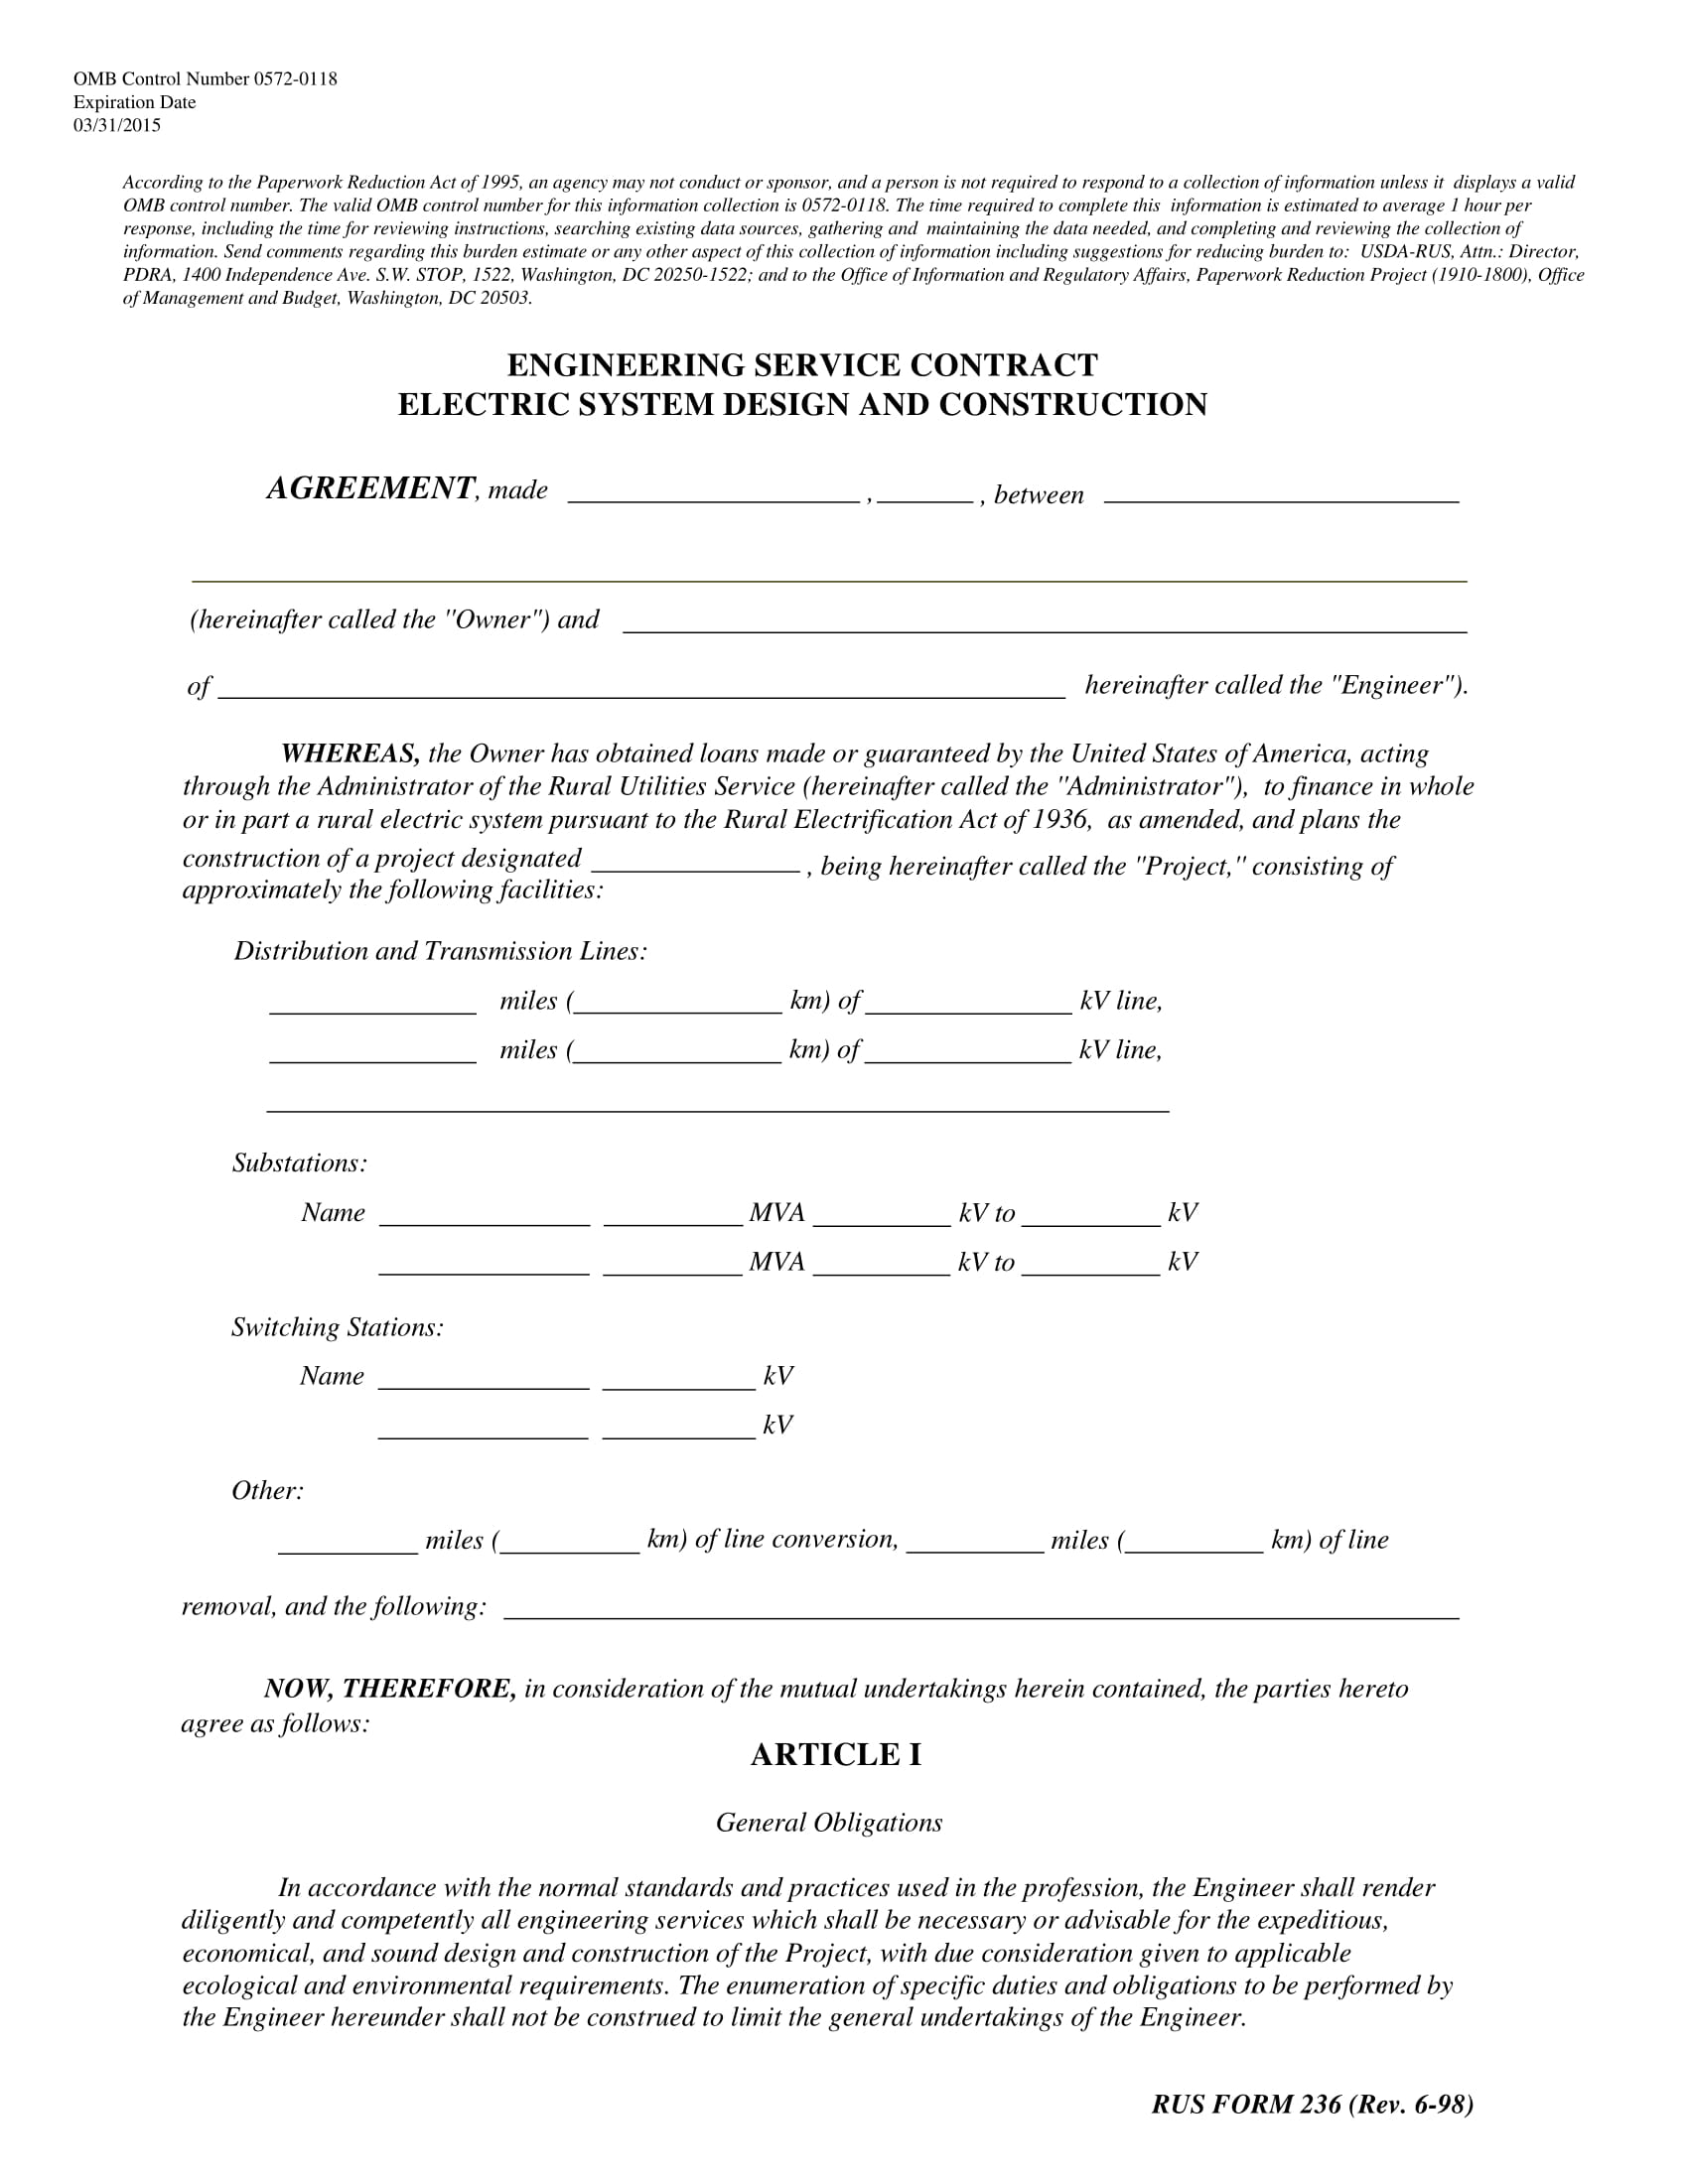 engineering service contract agreement on electric system design and construction template example 01